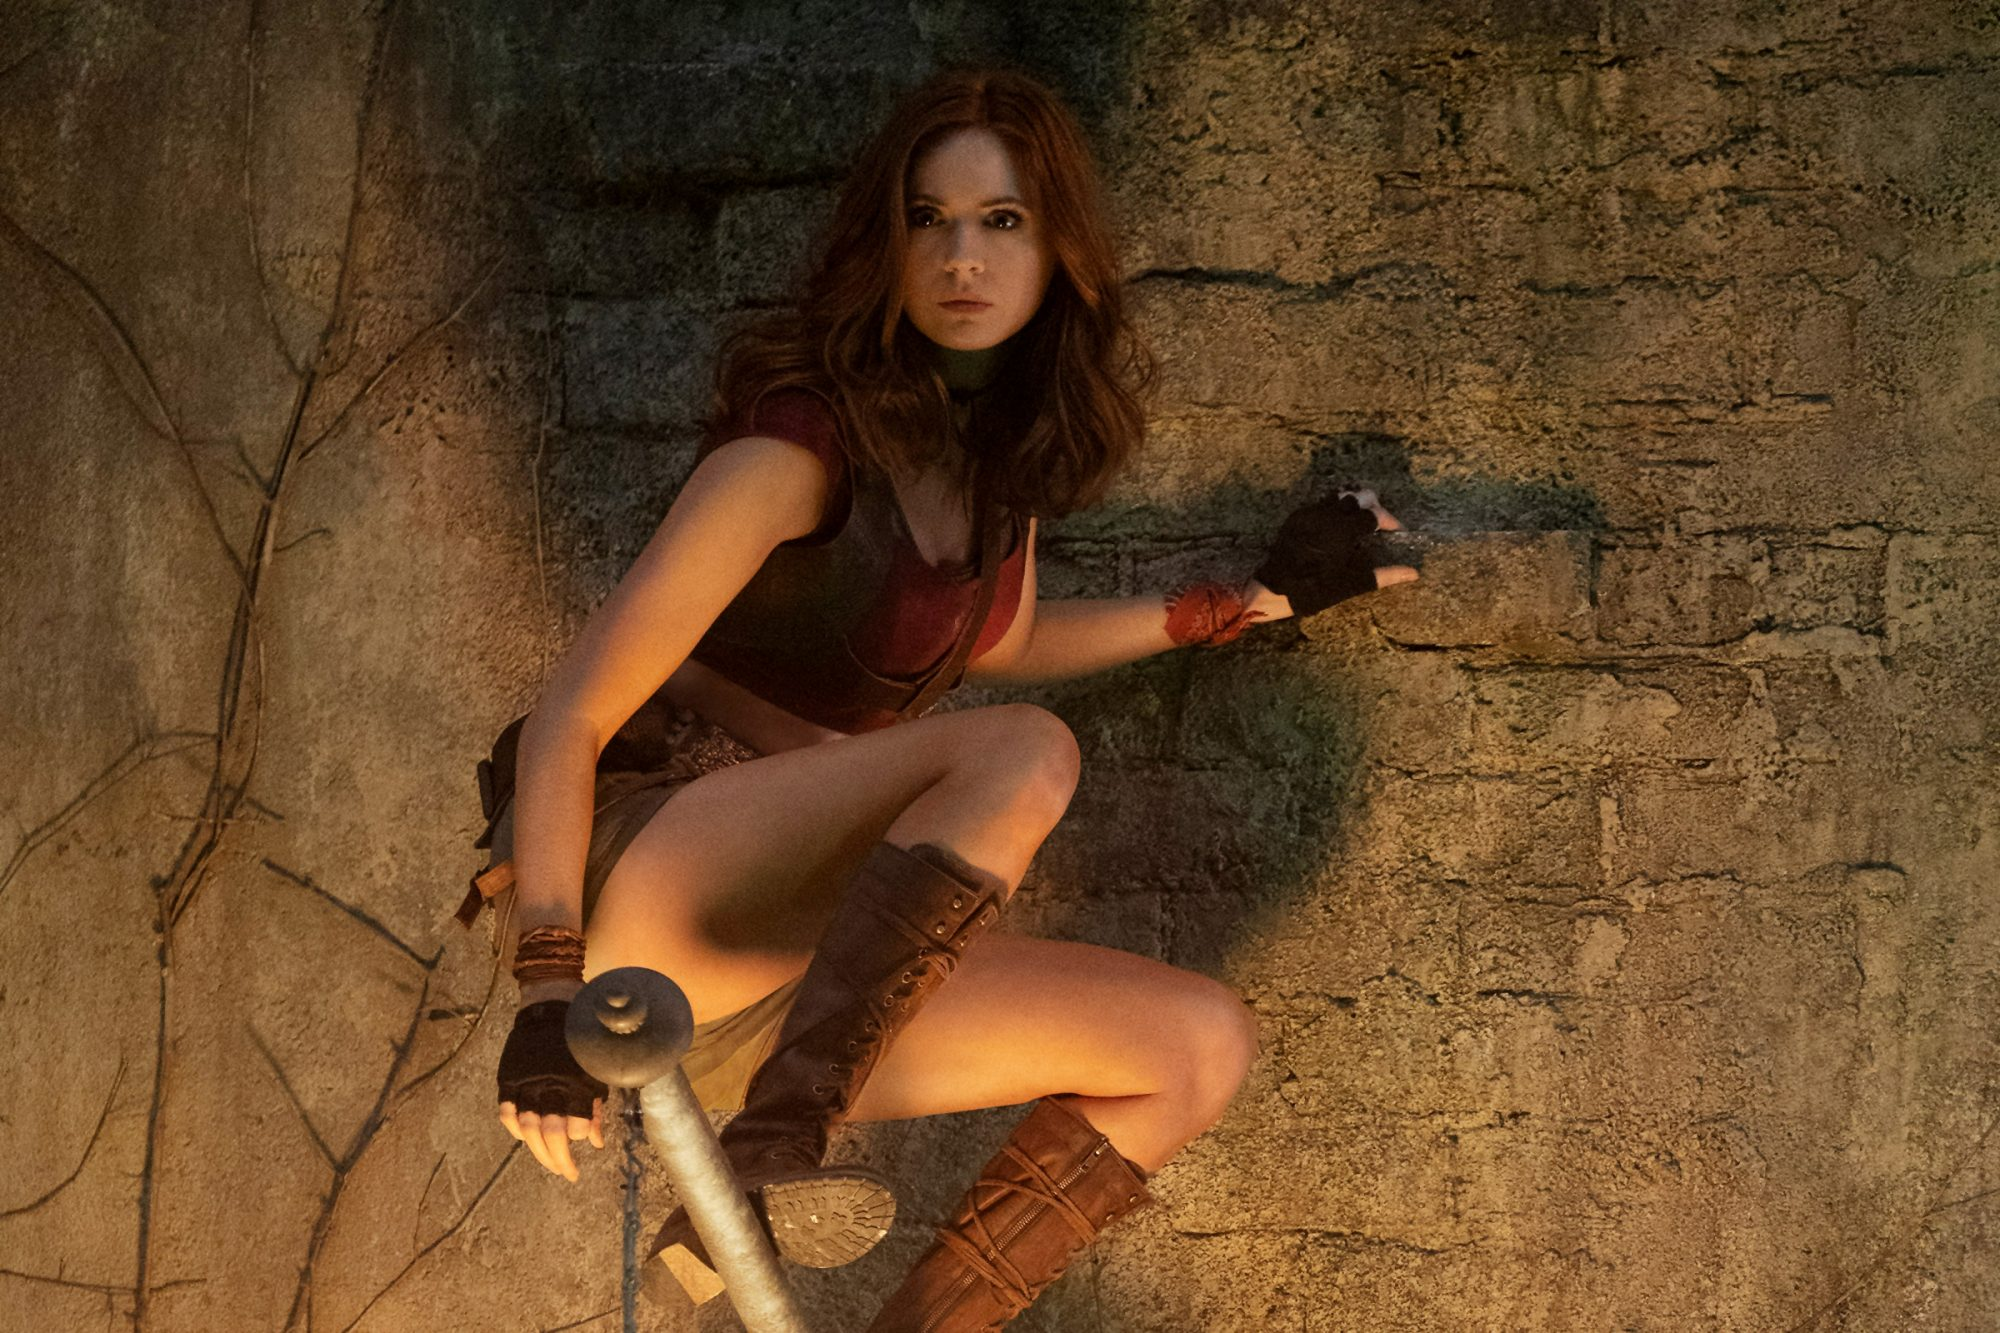 Karen Gillan star in Jumanji: The Next Level